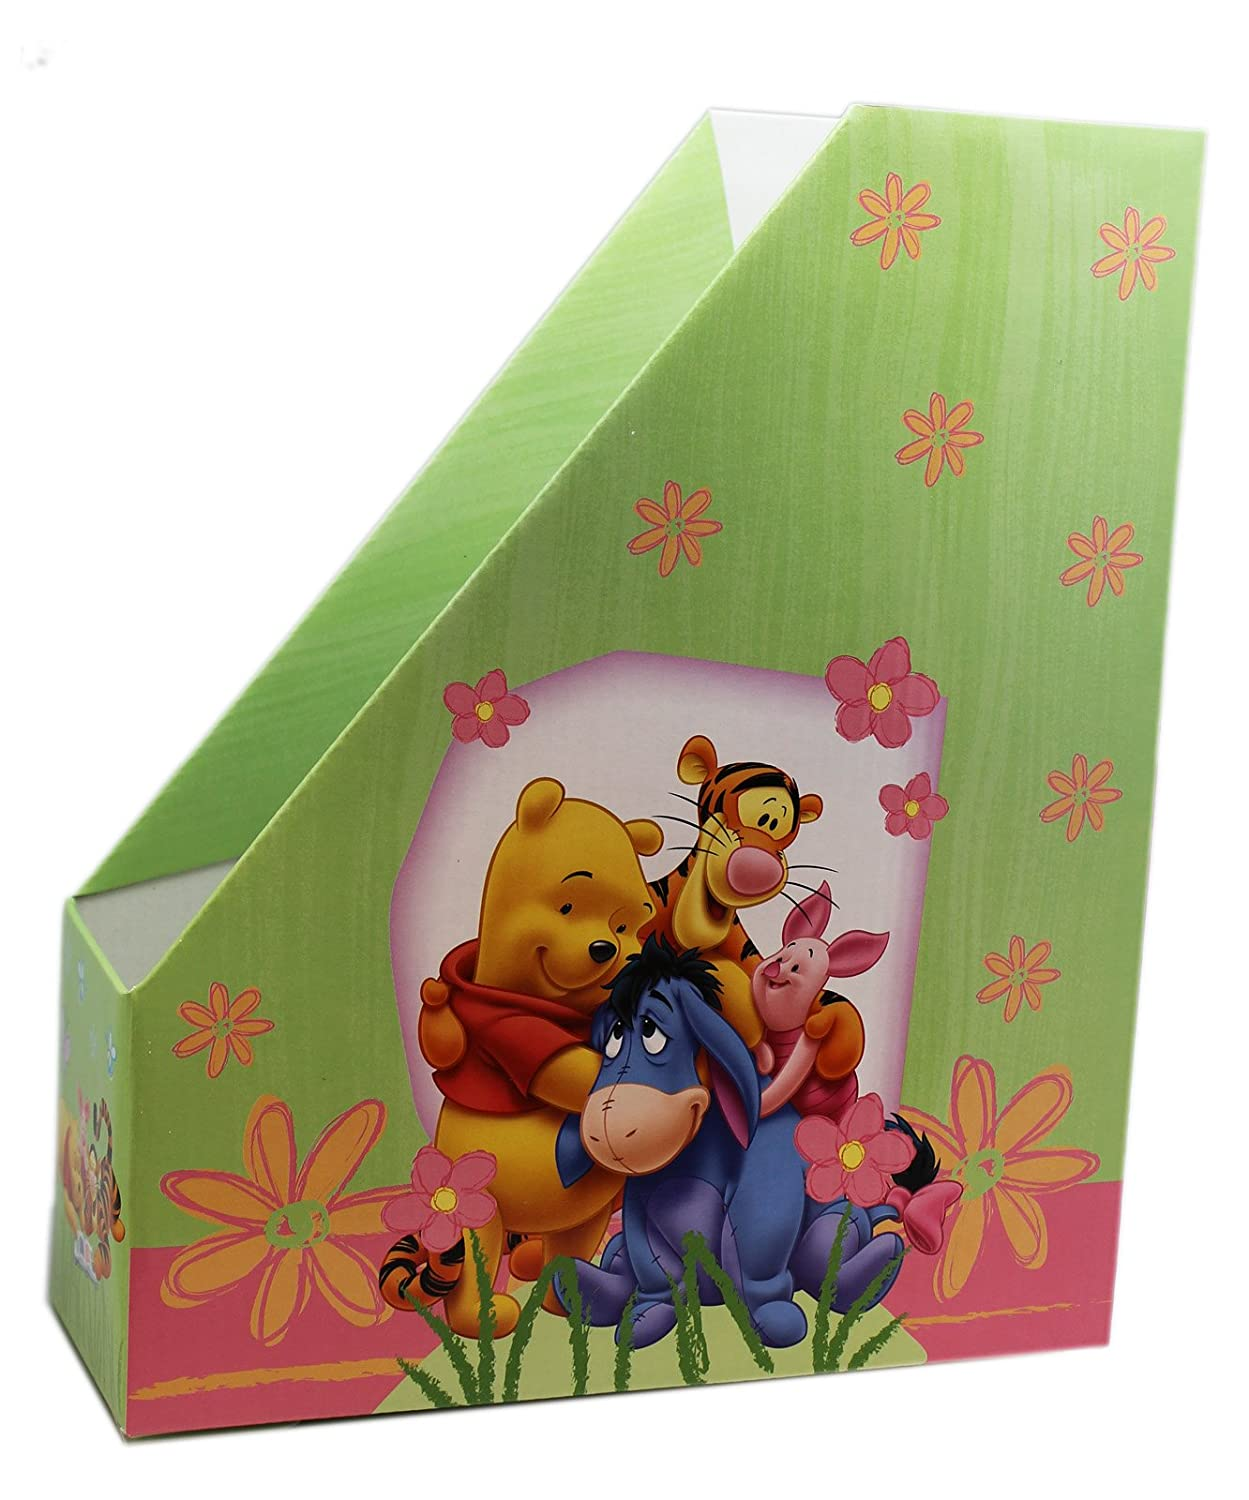 Pink and Green Winnie the Pooh Magazine and Coloring Book Holder ...